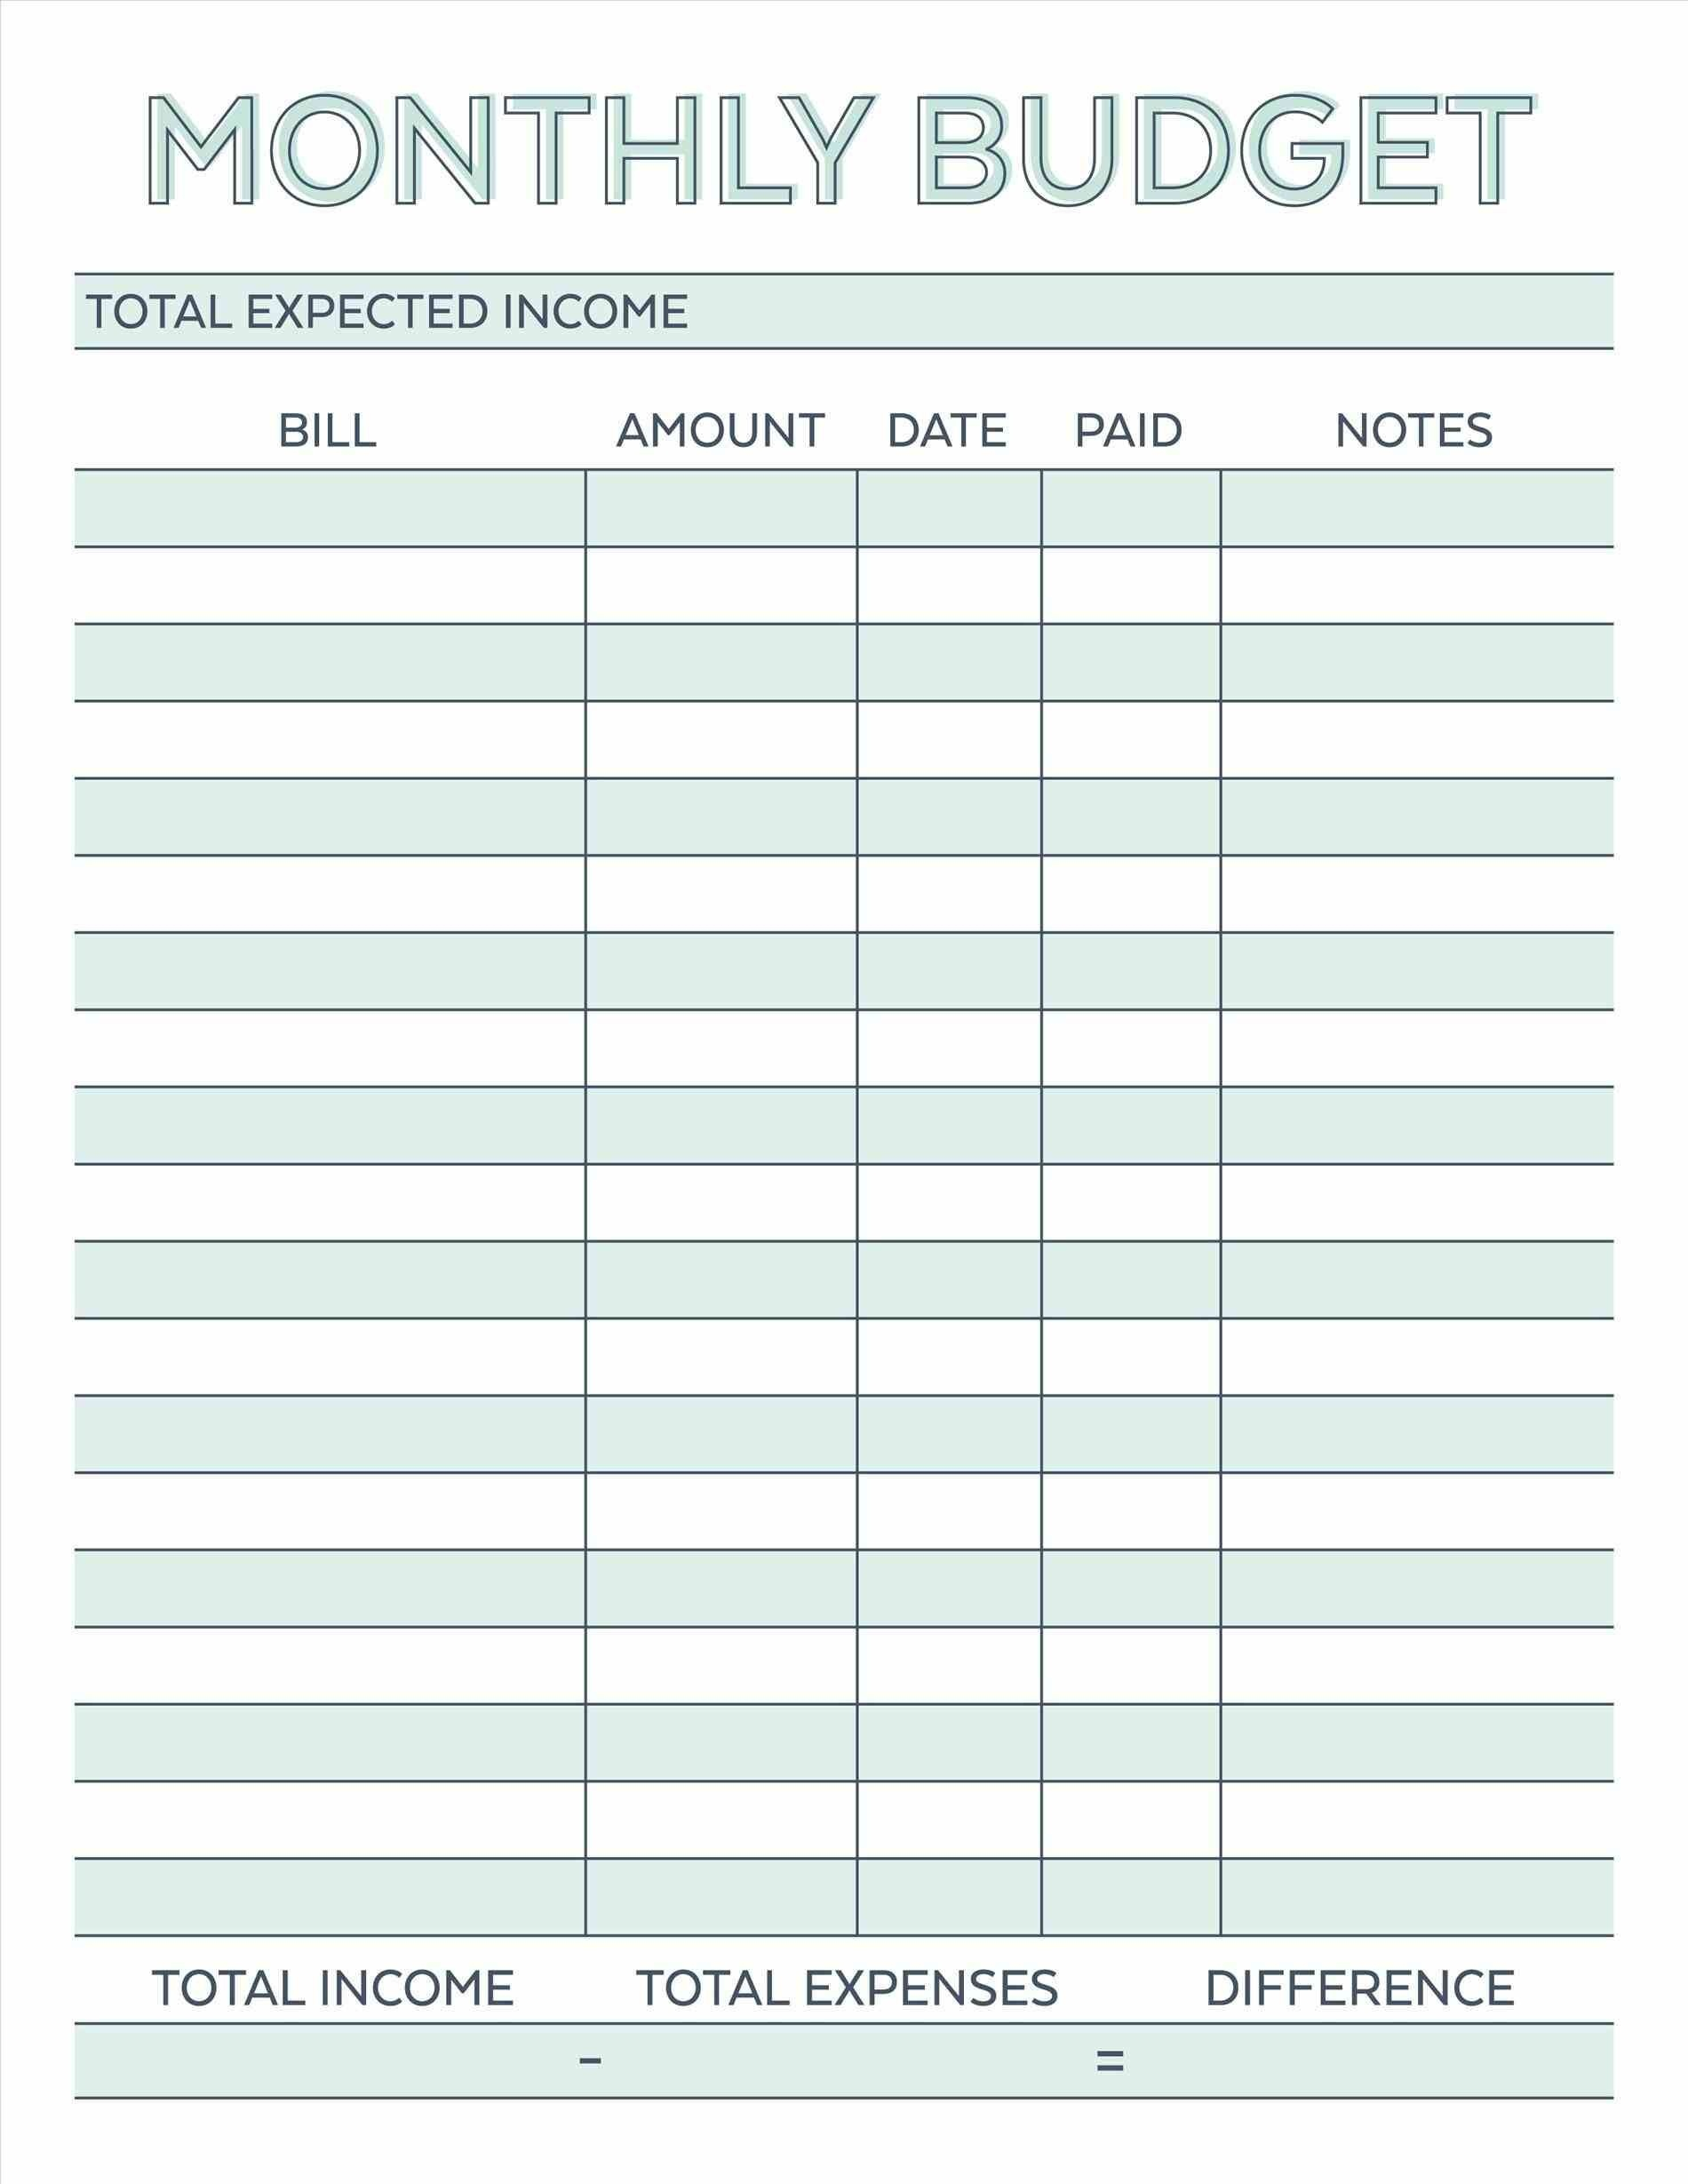 Budget Planner Planner Worksheet Monthly Bills Template Free - Free Printable Budget Templates